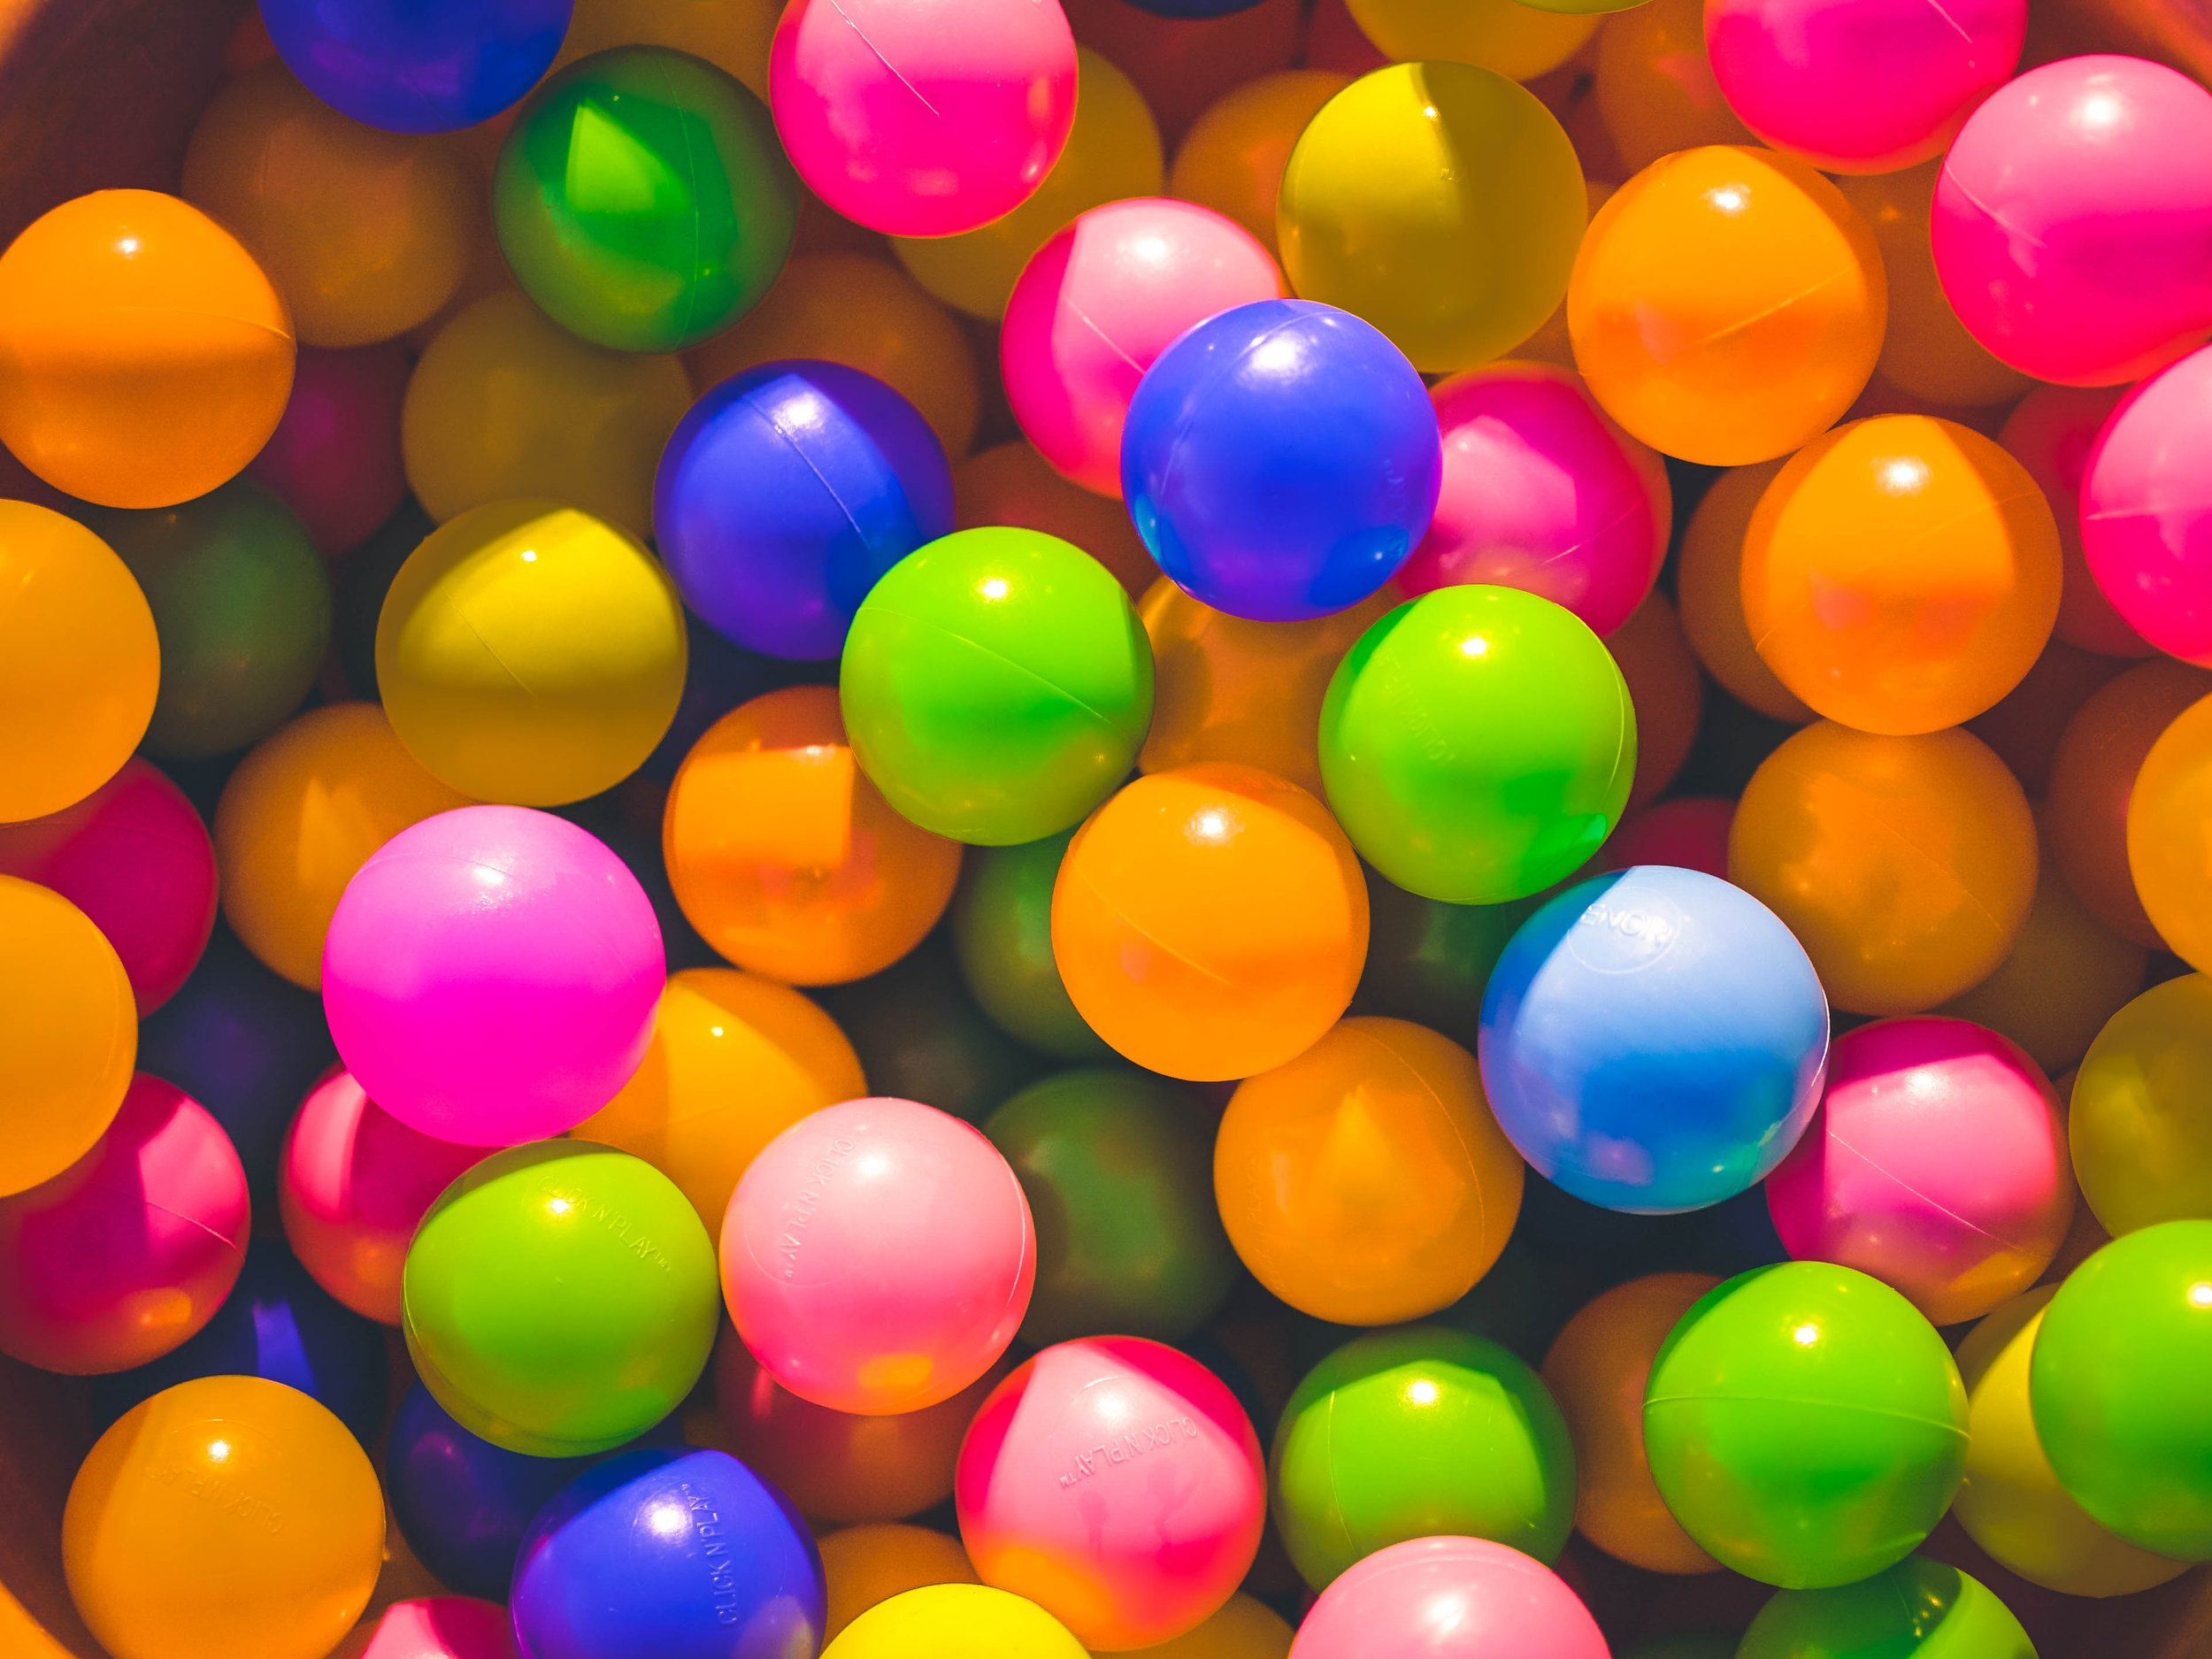 from the ball pit - coming soon - a podcast about the colorful lives we live